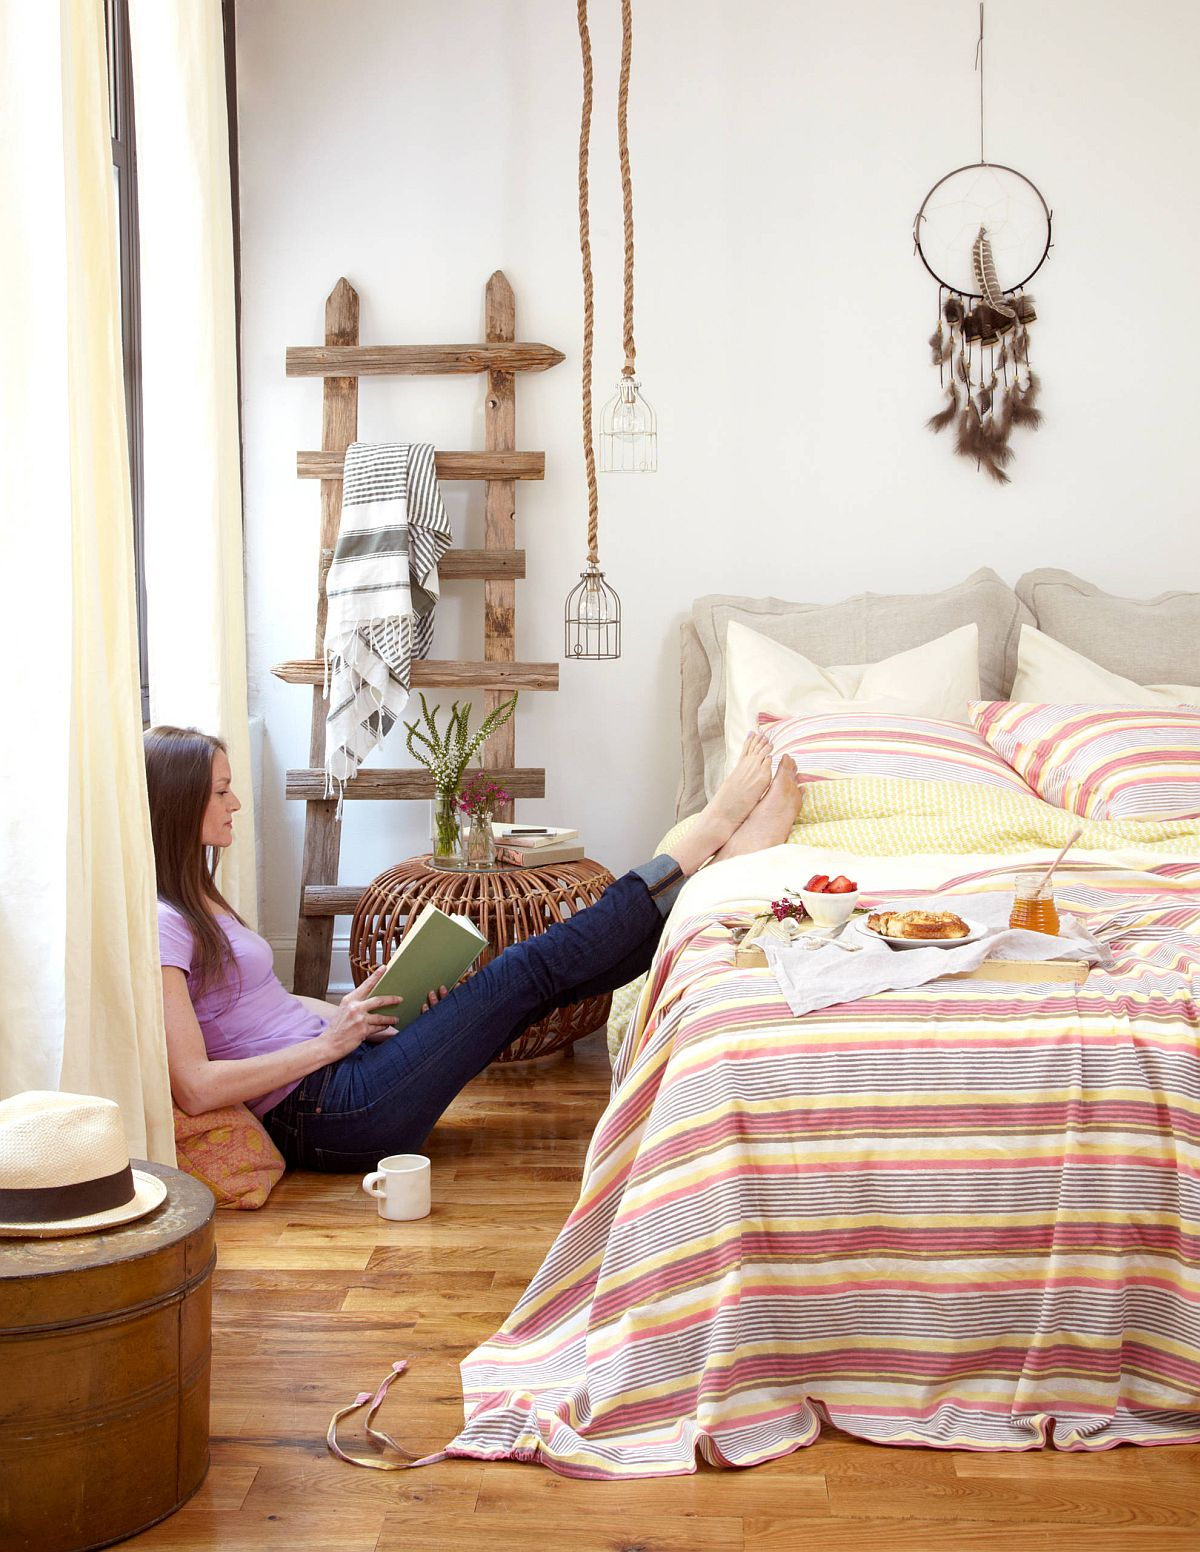 Gorgeous bedroom with eclectic syle and bohemian charm feels relaxing